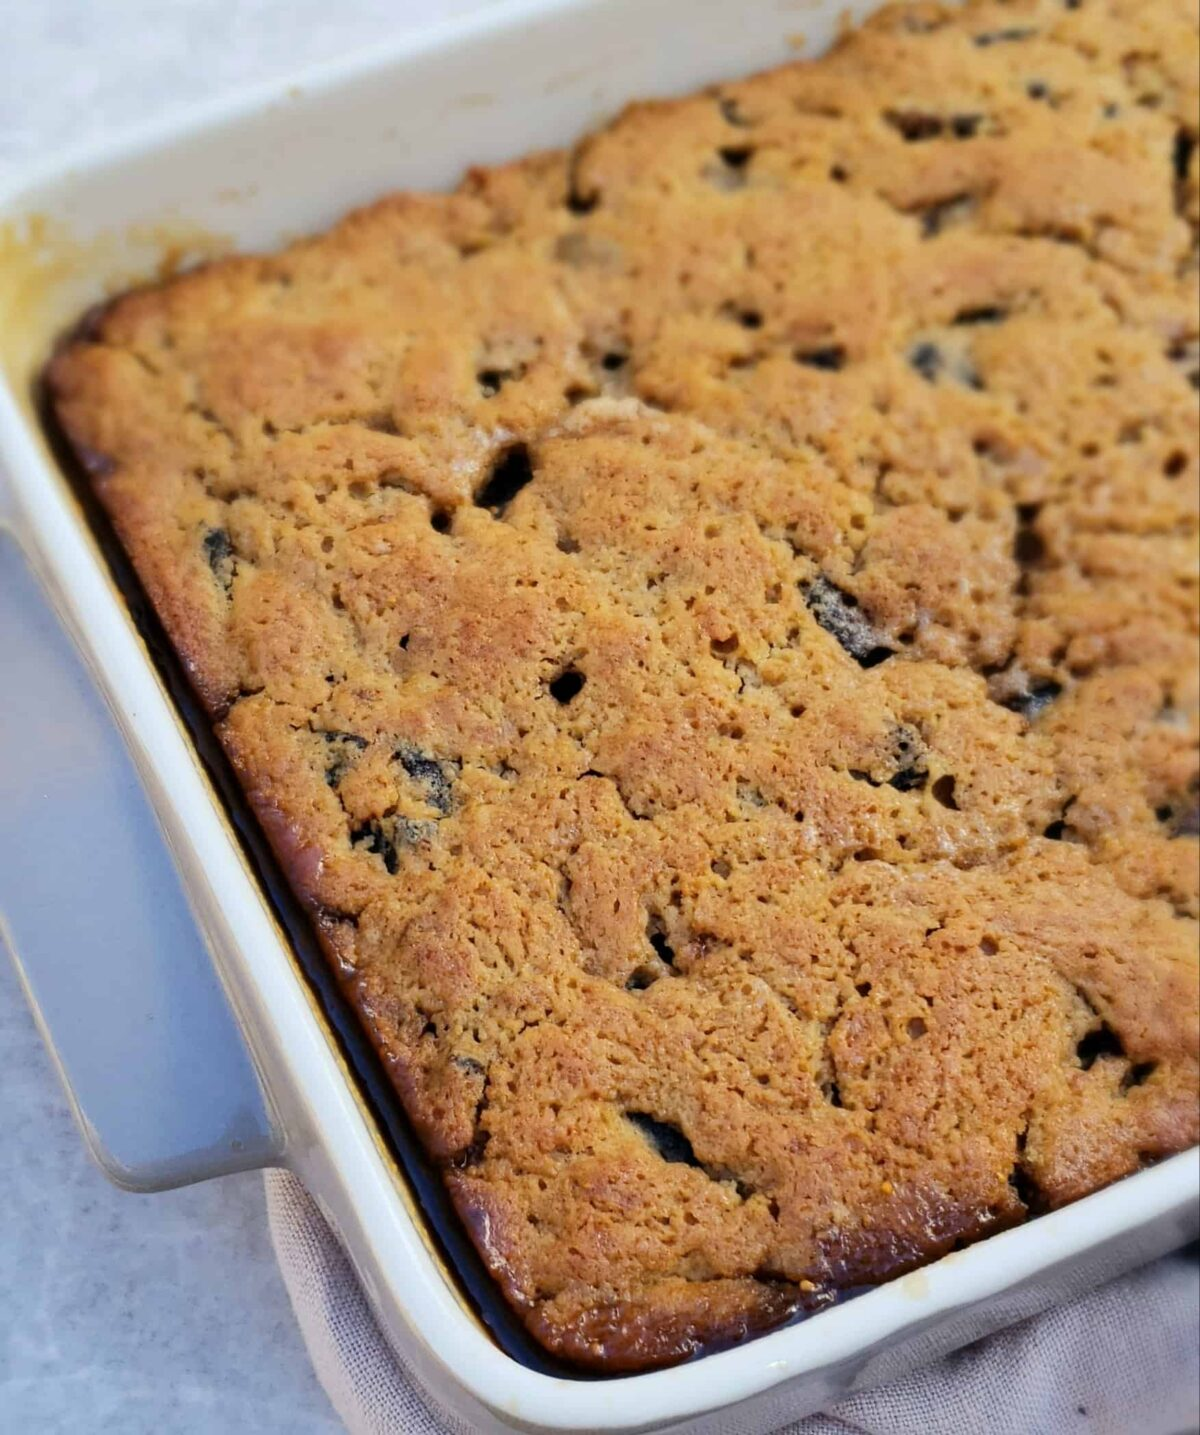 Mission fig cake with sauce in bottom of baking dish